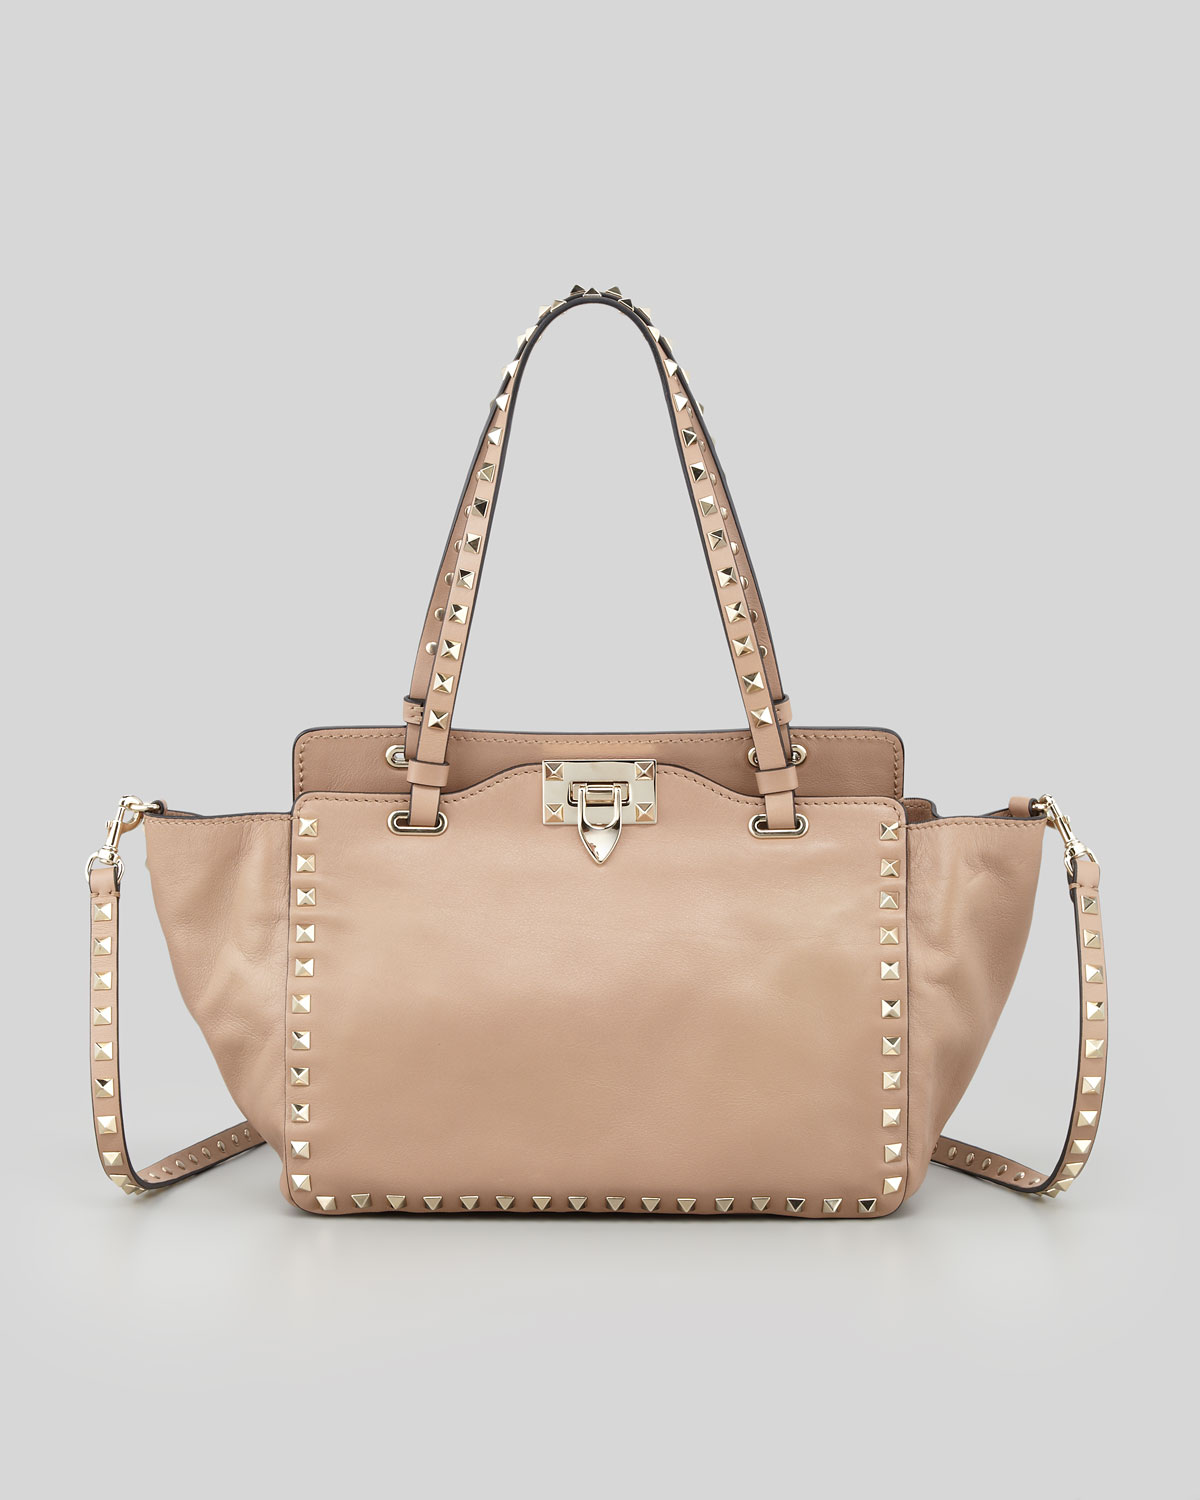 fa3496b2b1 Gallery. Previously sold at: Neiman Marcus · Women's Valentino Rockstud Bags